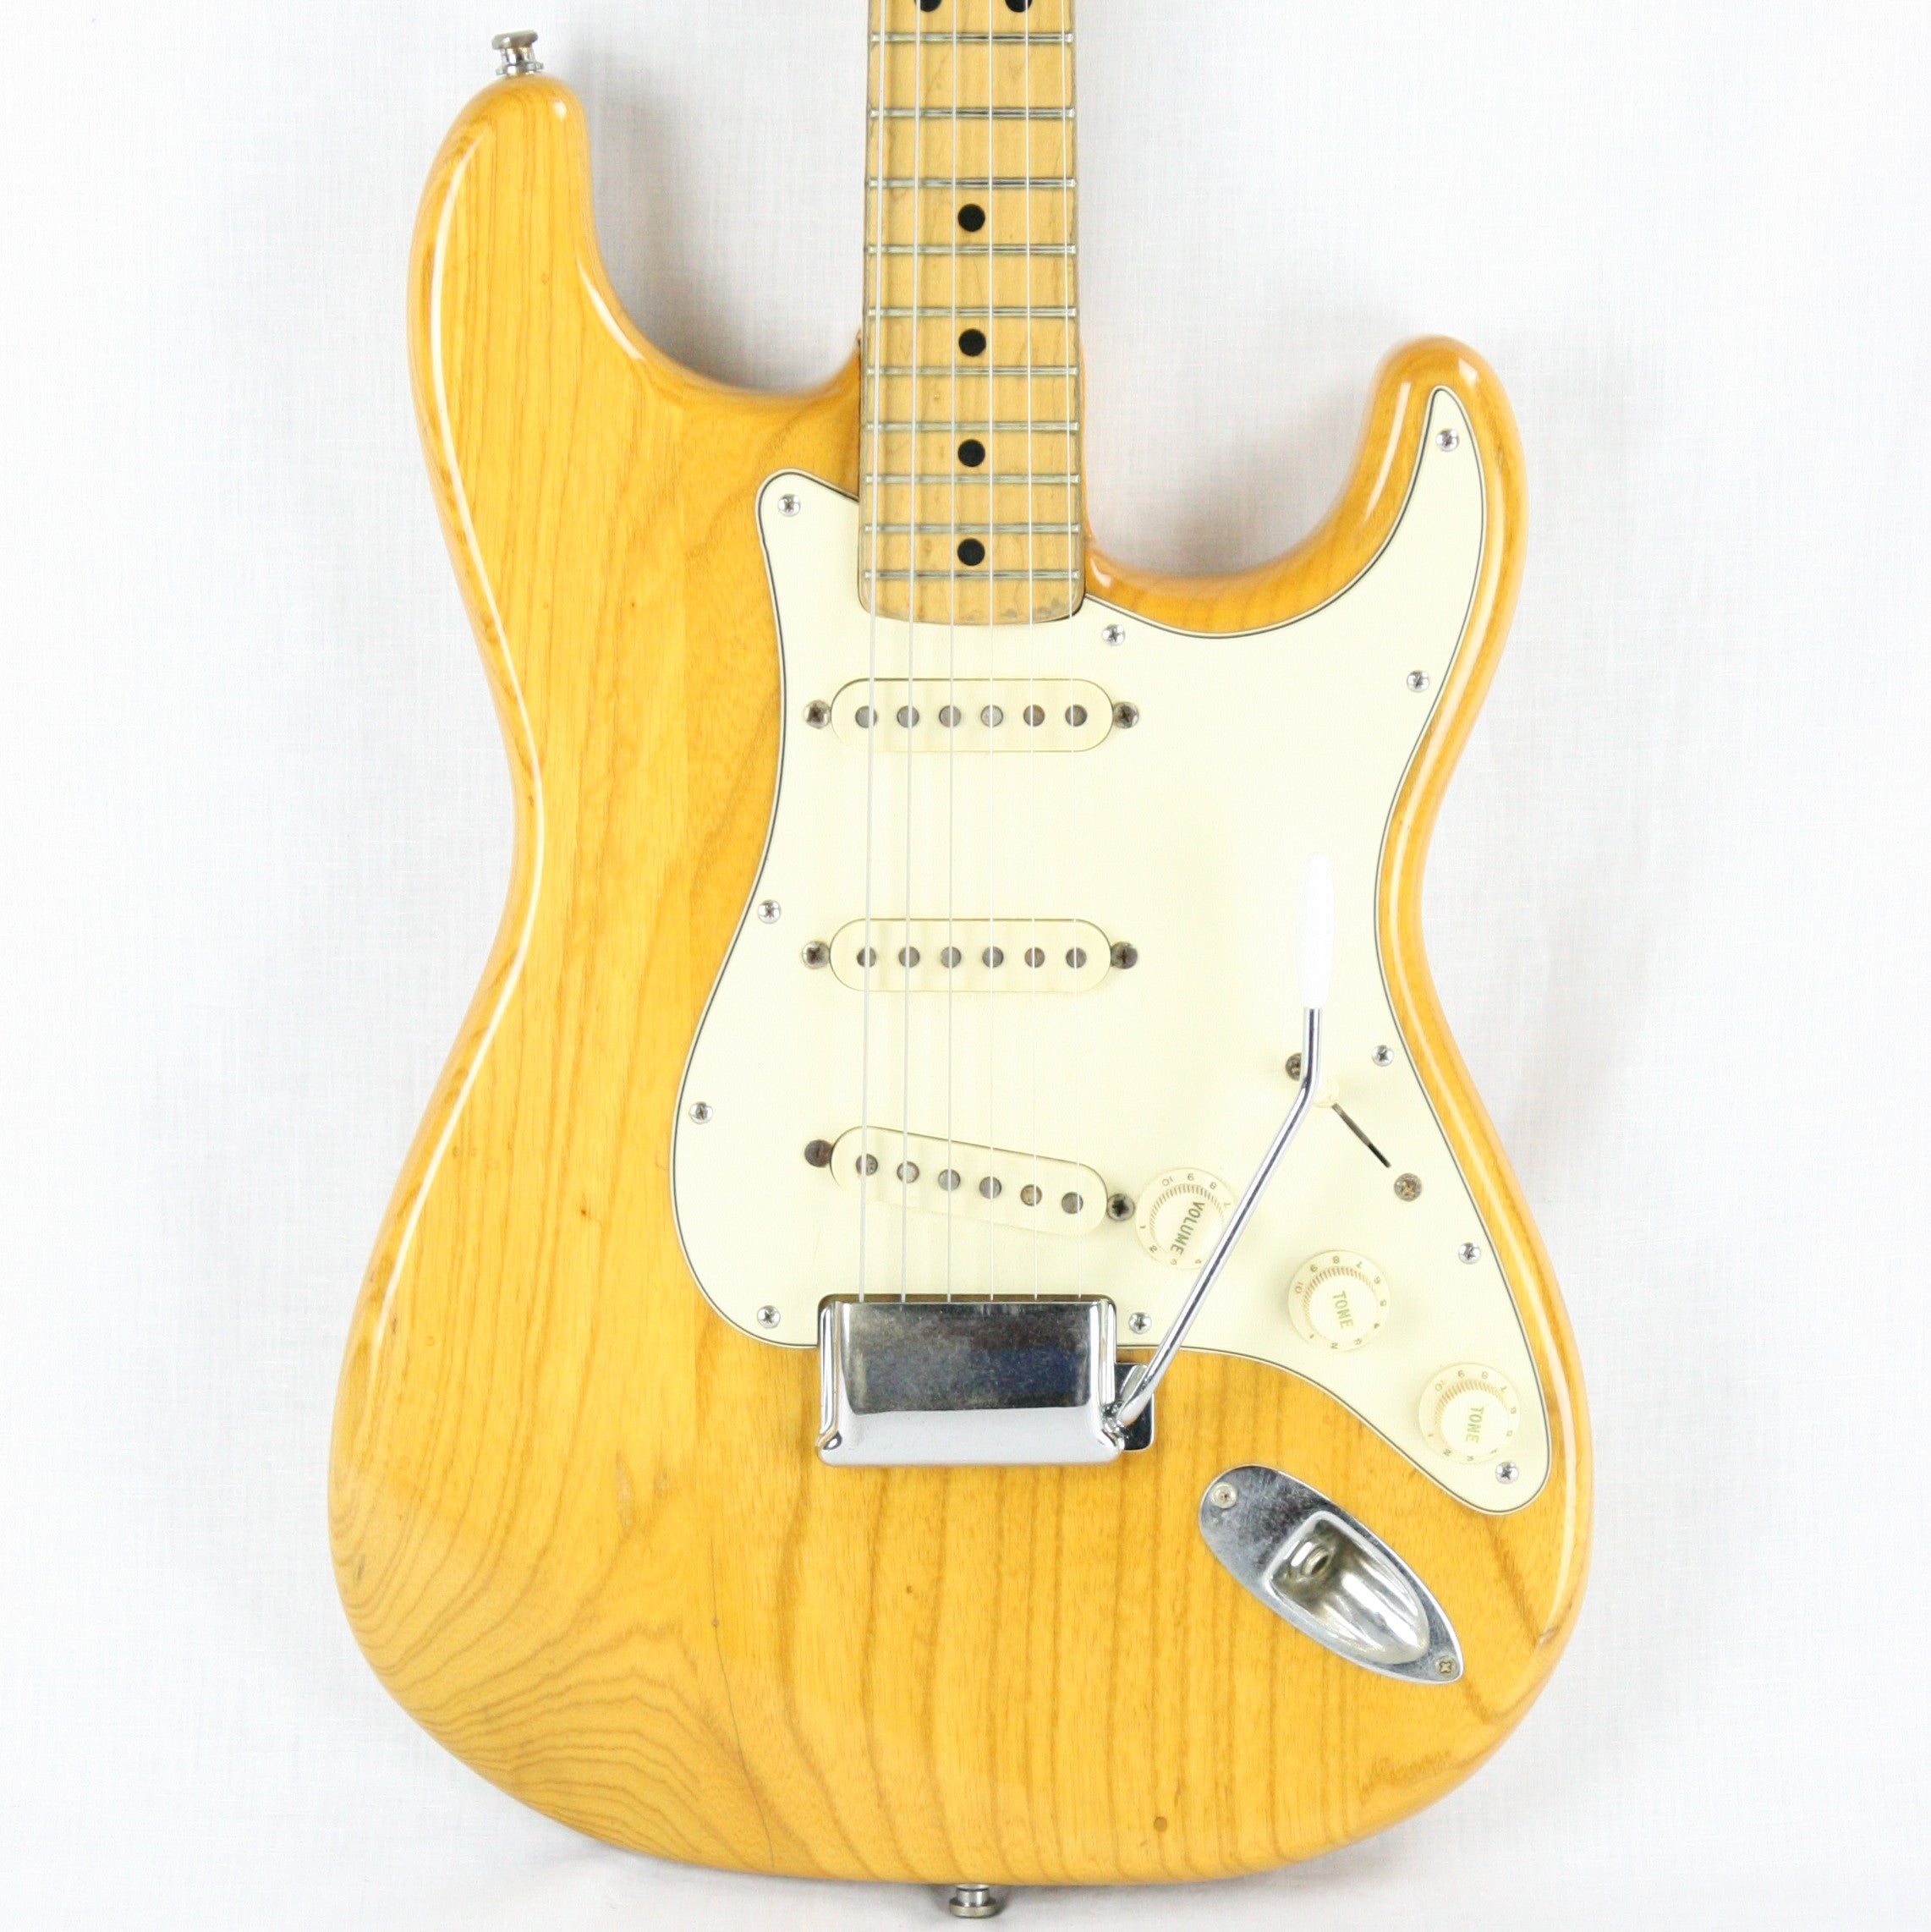 1973 Fender Stratocaster Natural Finish! 1970's Strat w/ Staggered Pole Pickups! Maple Neck! LIGHTWEIGHT